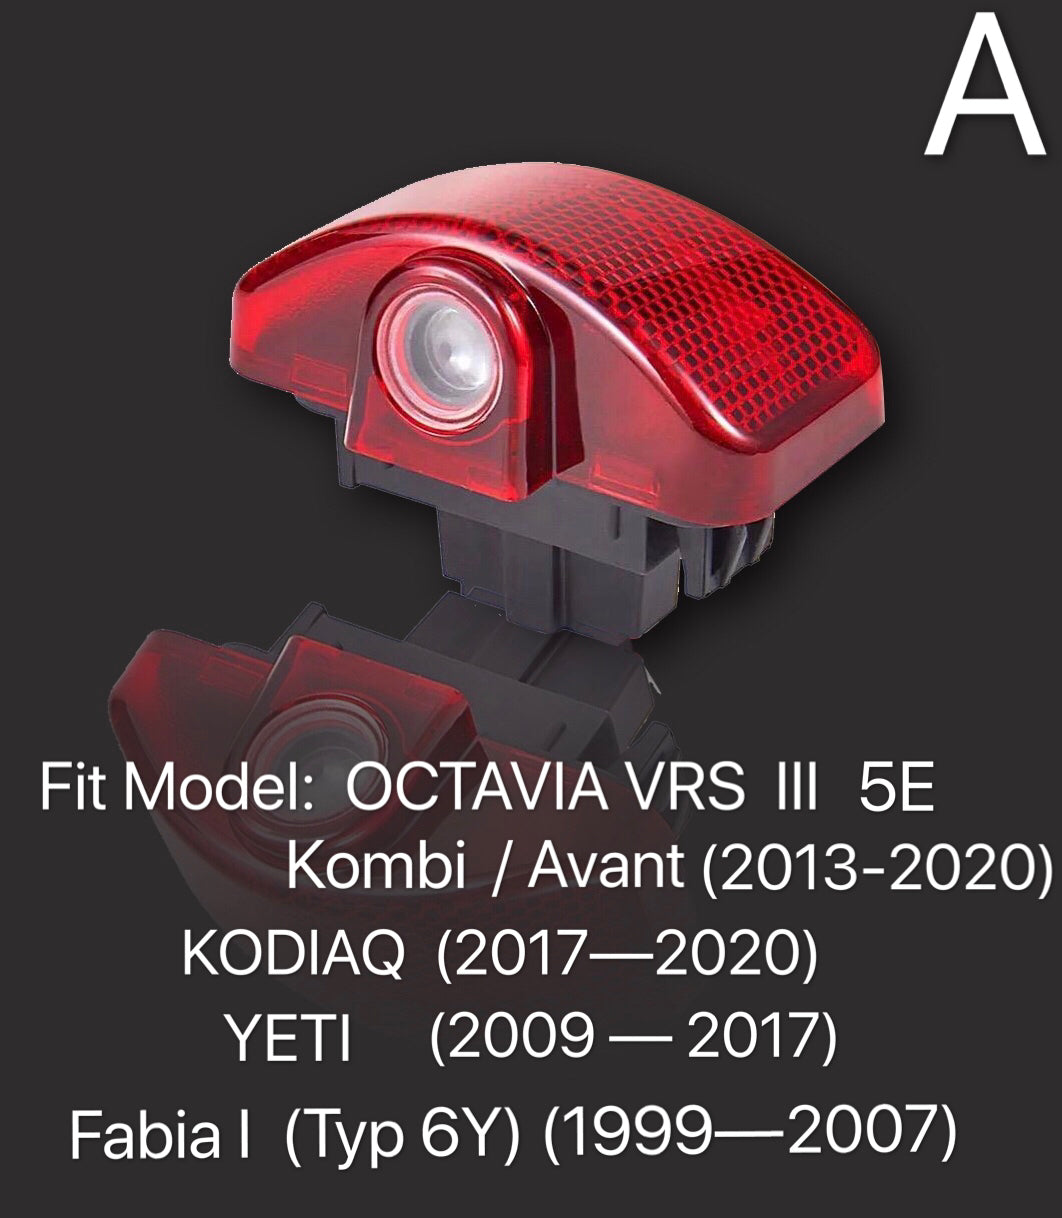 SKODA YETI LOGO  LIGHTS Nr.60 (quantity  1 =  2 Logo Film /  2 door lights)